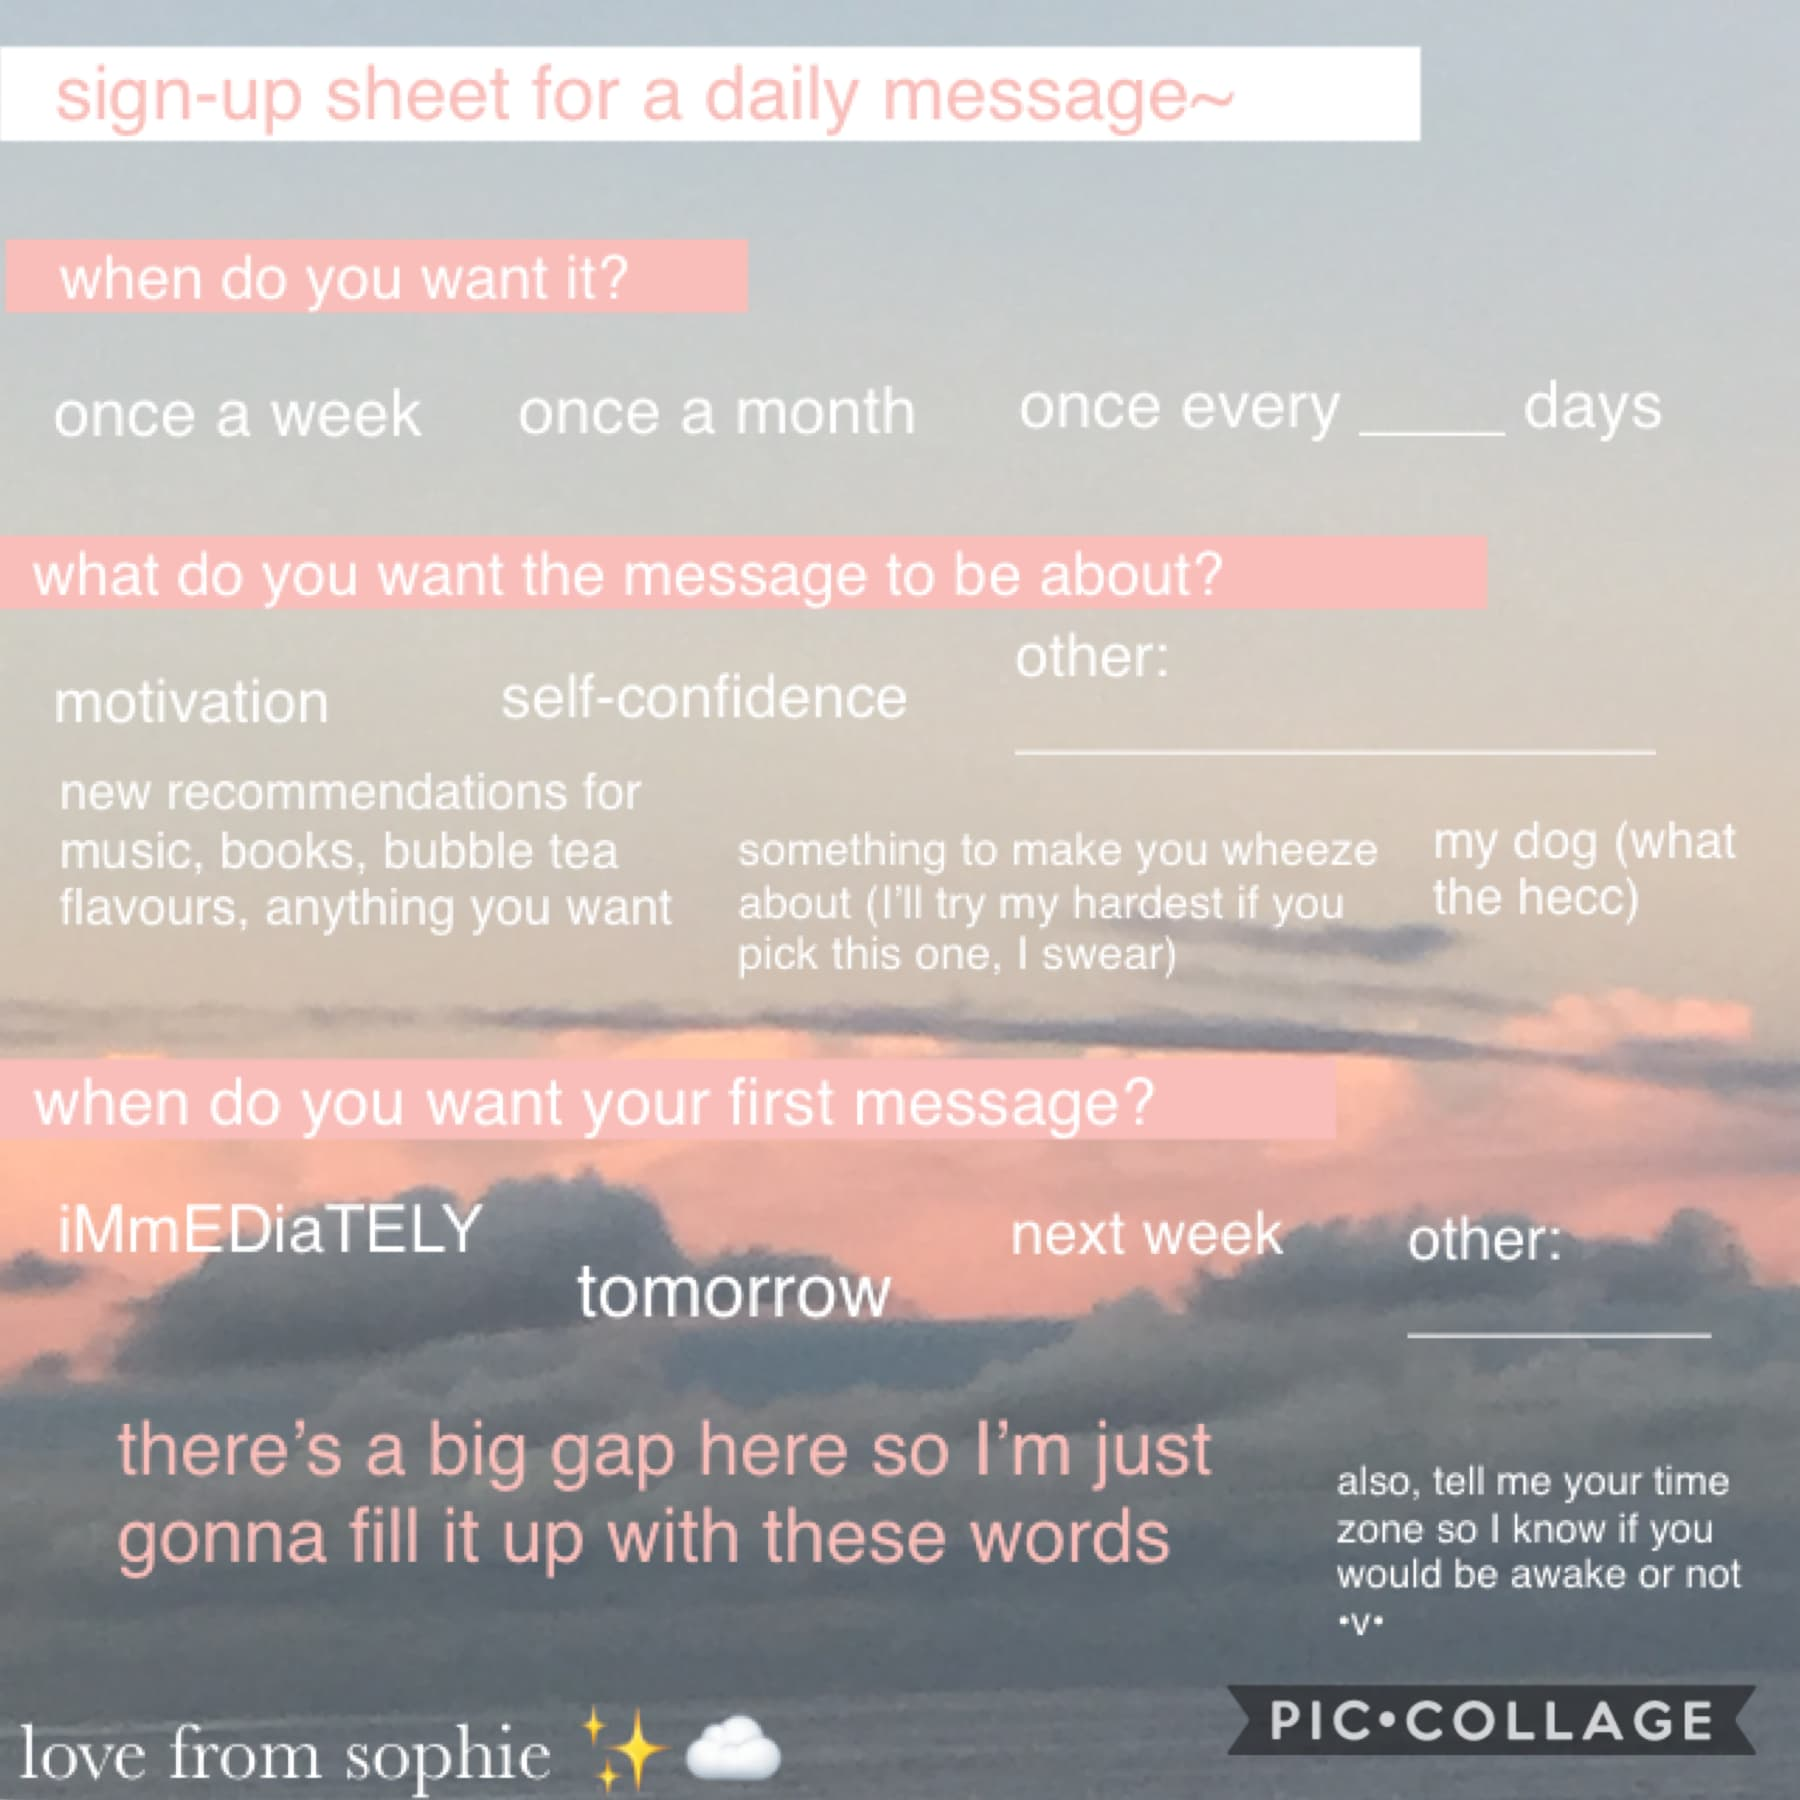 heyheyhey friendsss (tap)  So this is just a random sign up sheet for a daily message from me :D I'll put more info in the remixes and stuff. Yeah. Hope y'all doing well homiesssss  yoohhh  sophie✨☁️